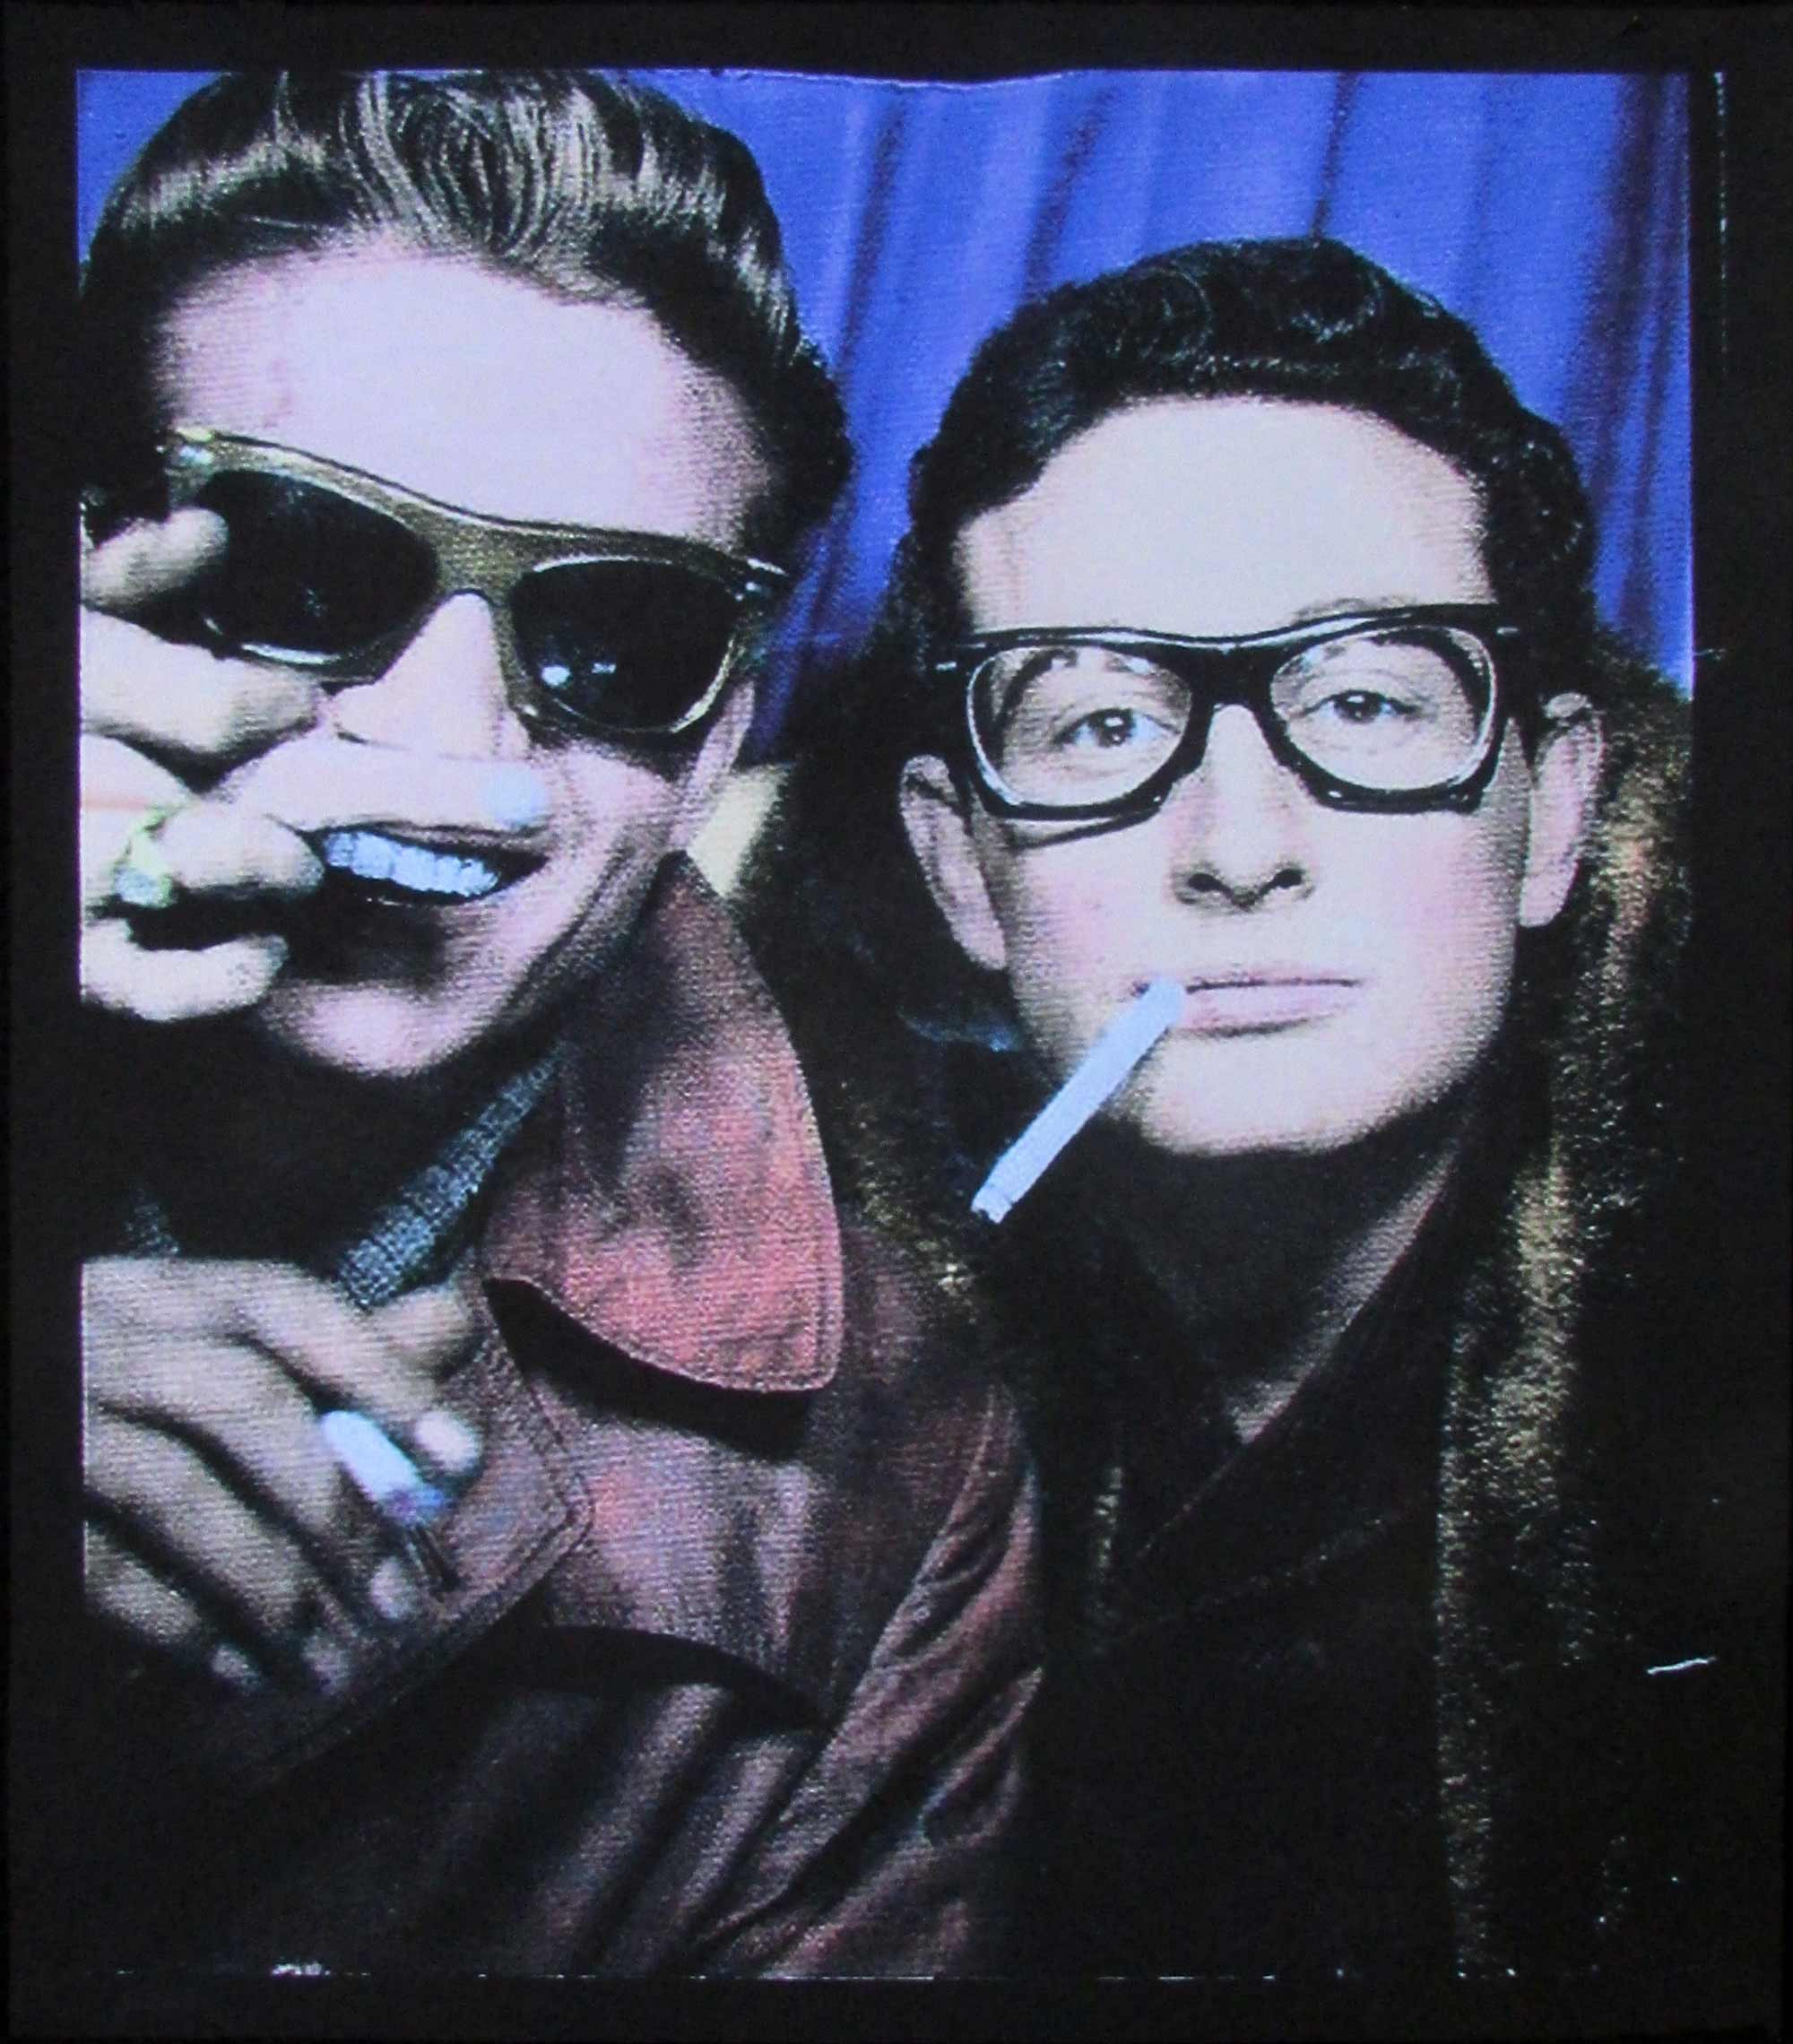 Waylon Jennings Buddy Holly Poster #1 Grand Central ...